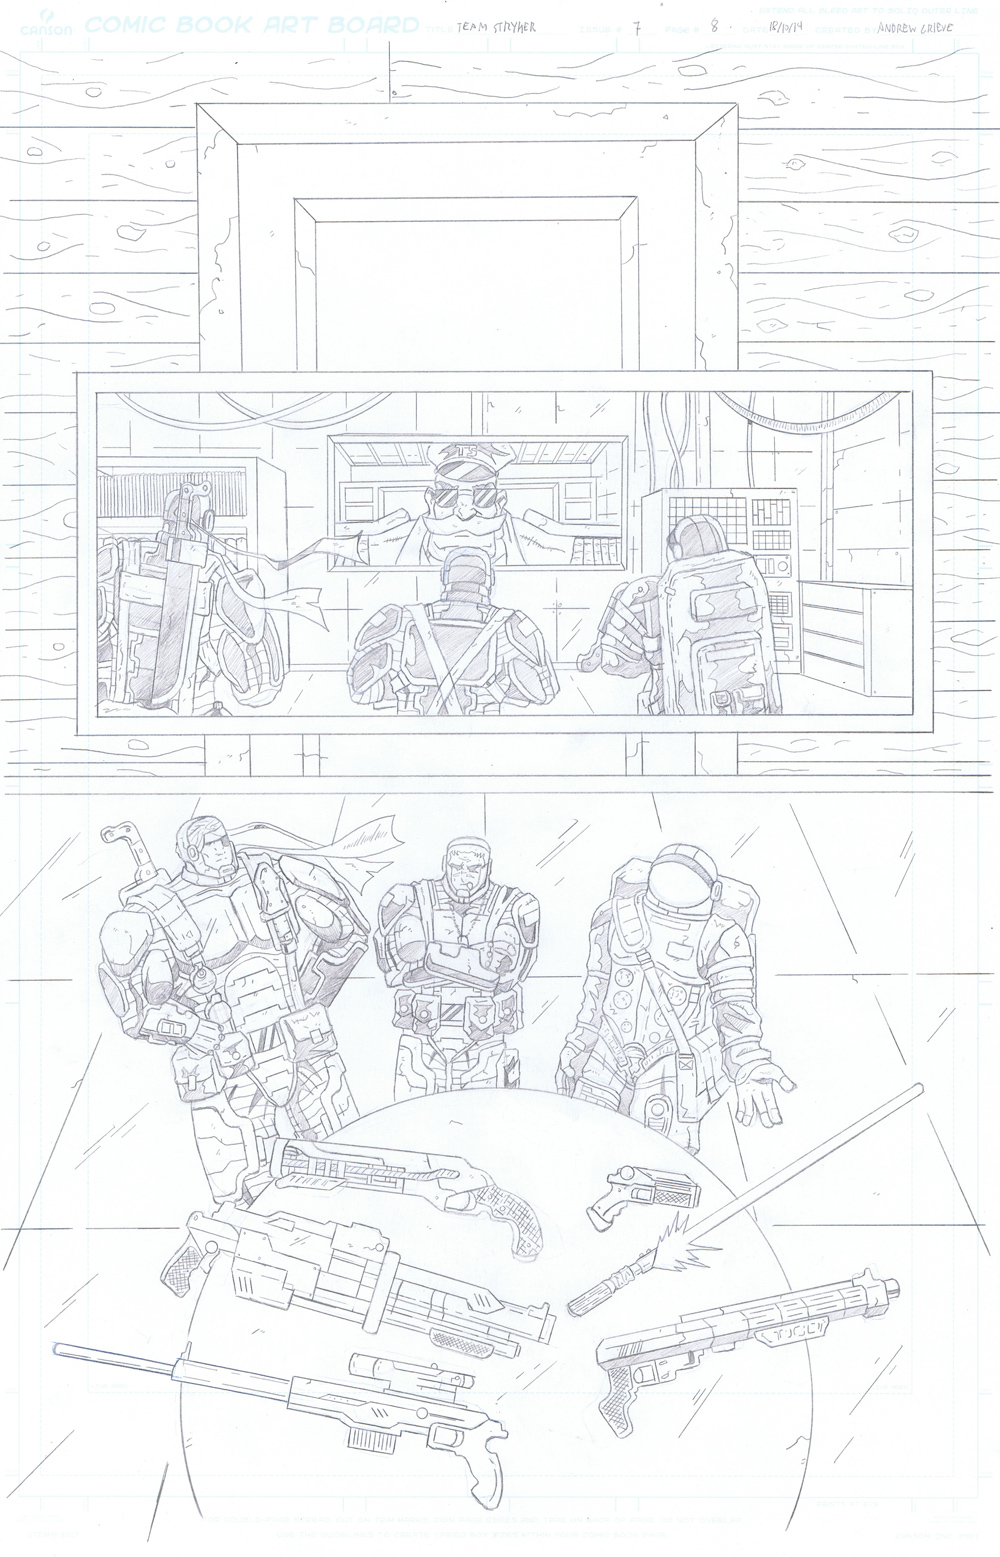 MISSION 007: PAGE 08 PENCIL